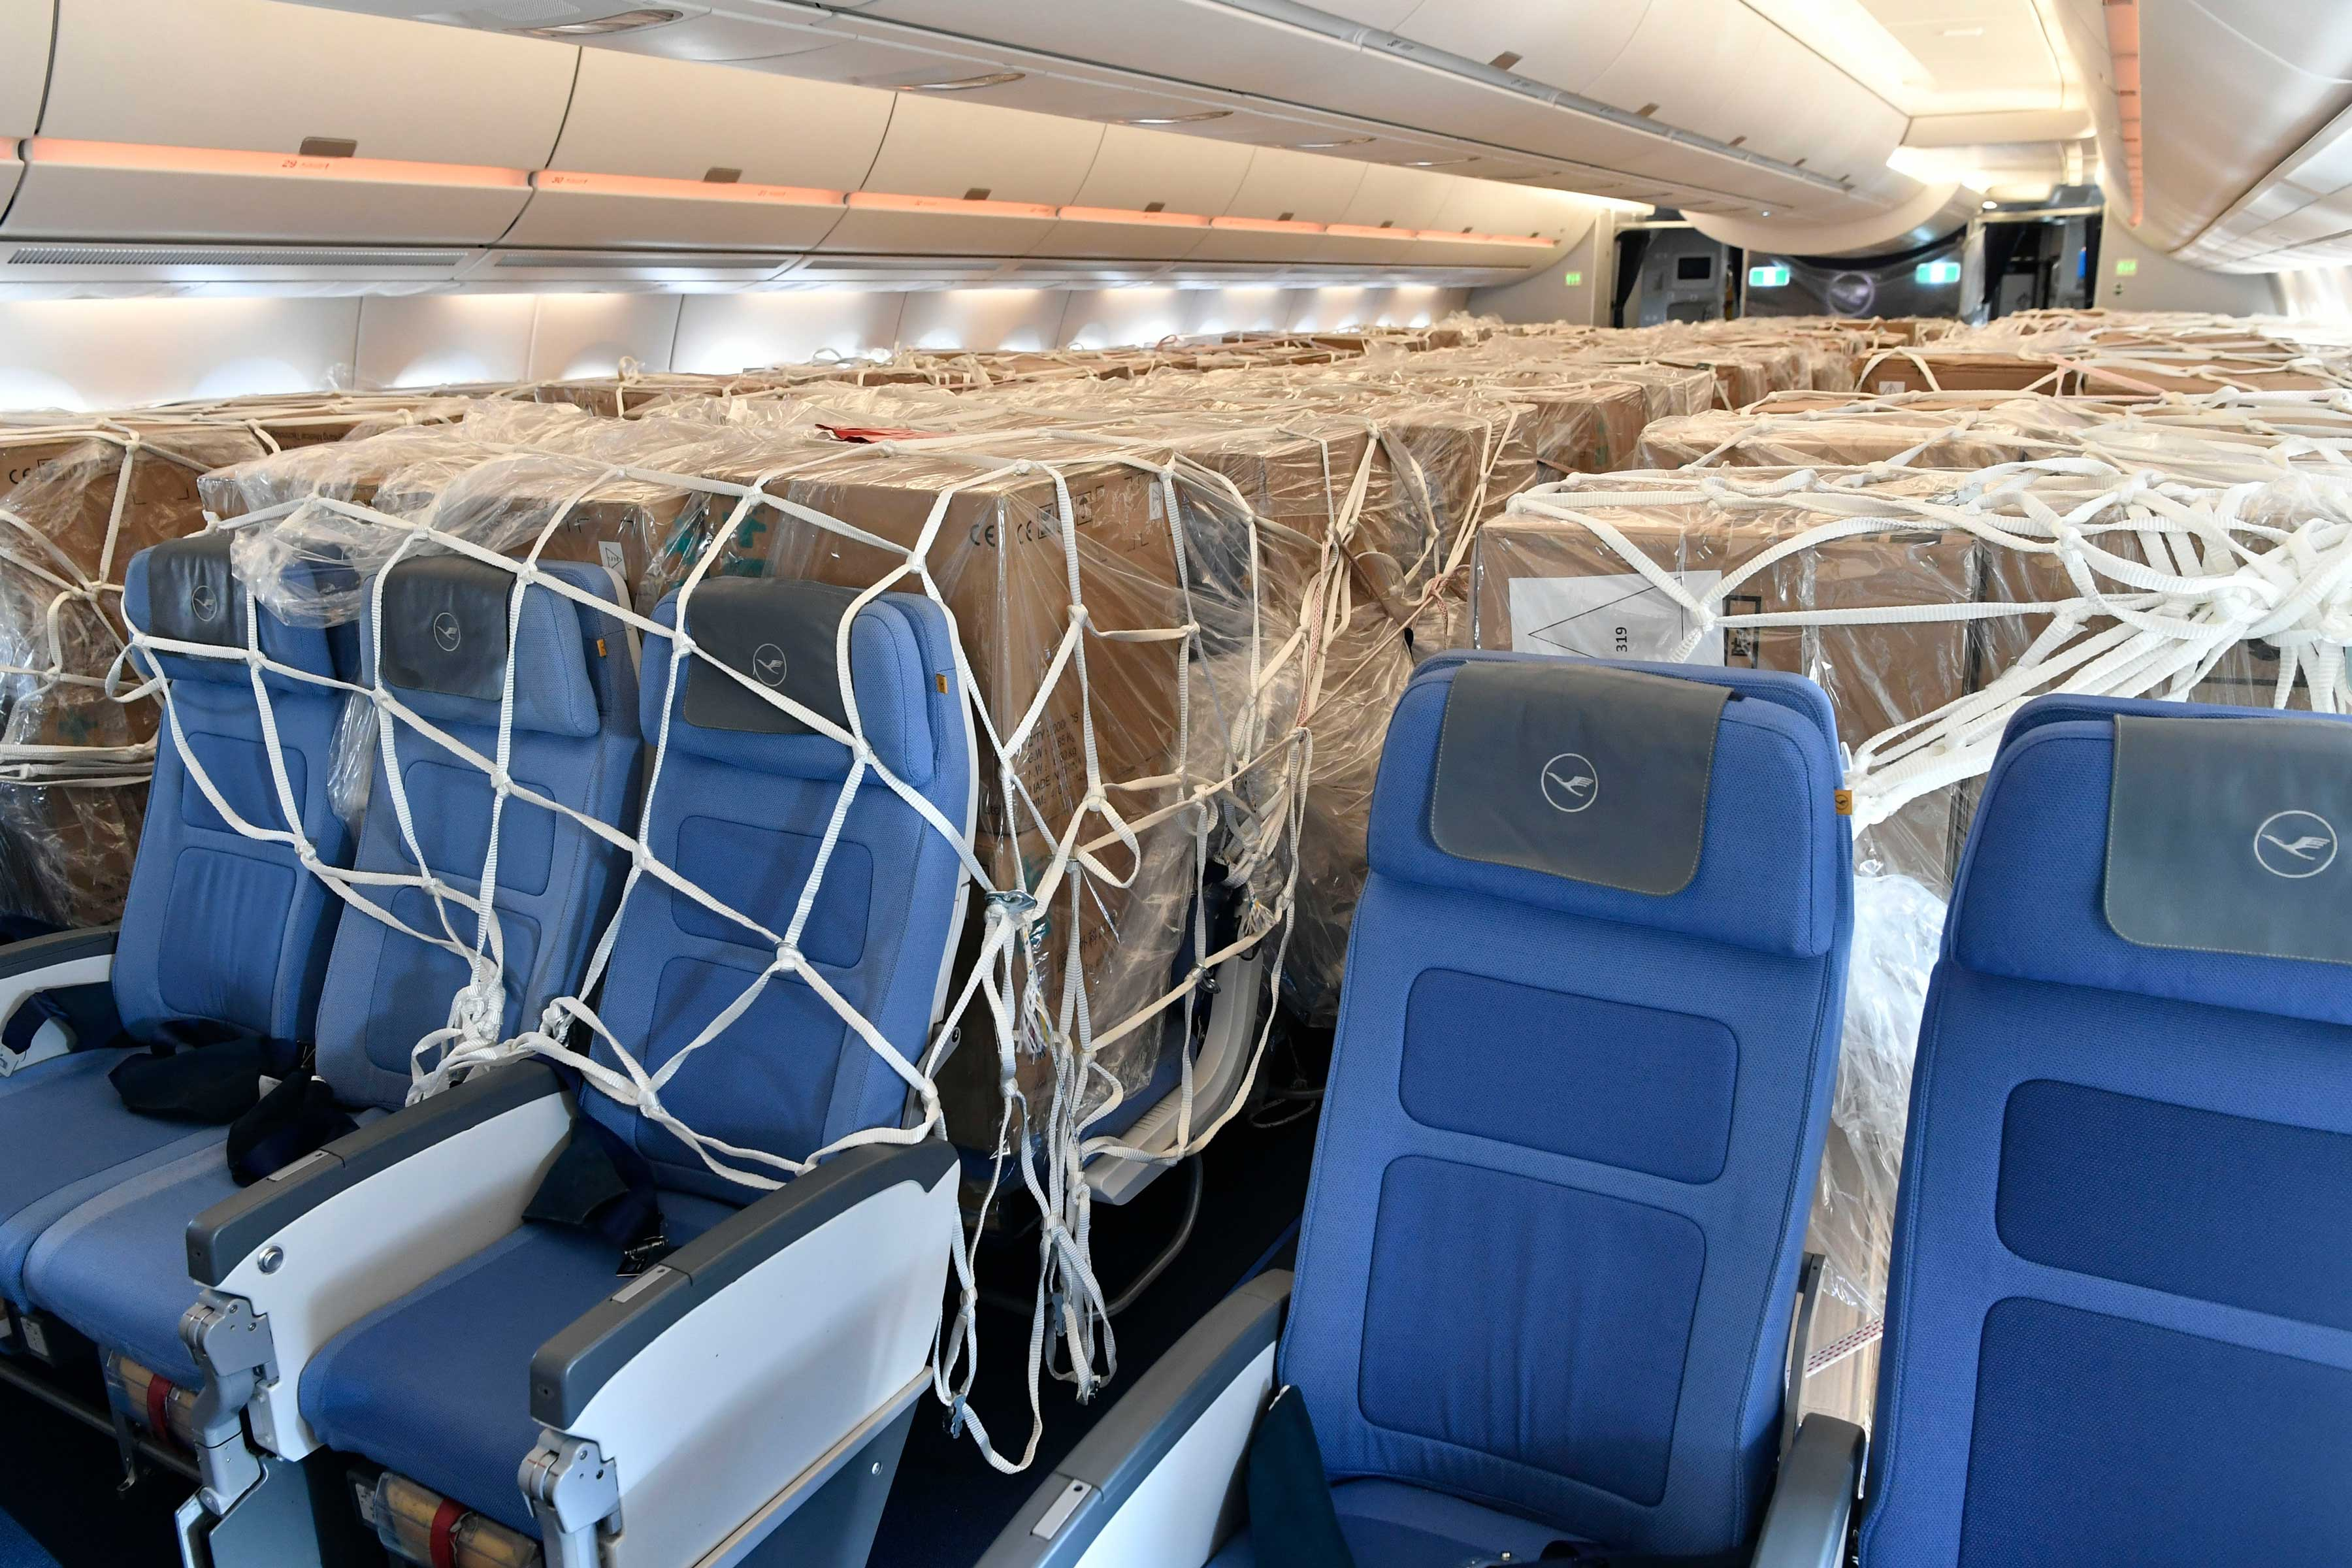 Lufthansa's A350 cabin carrying masks and other PPEs to Munich